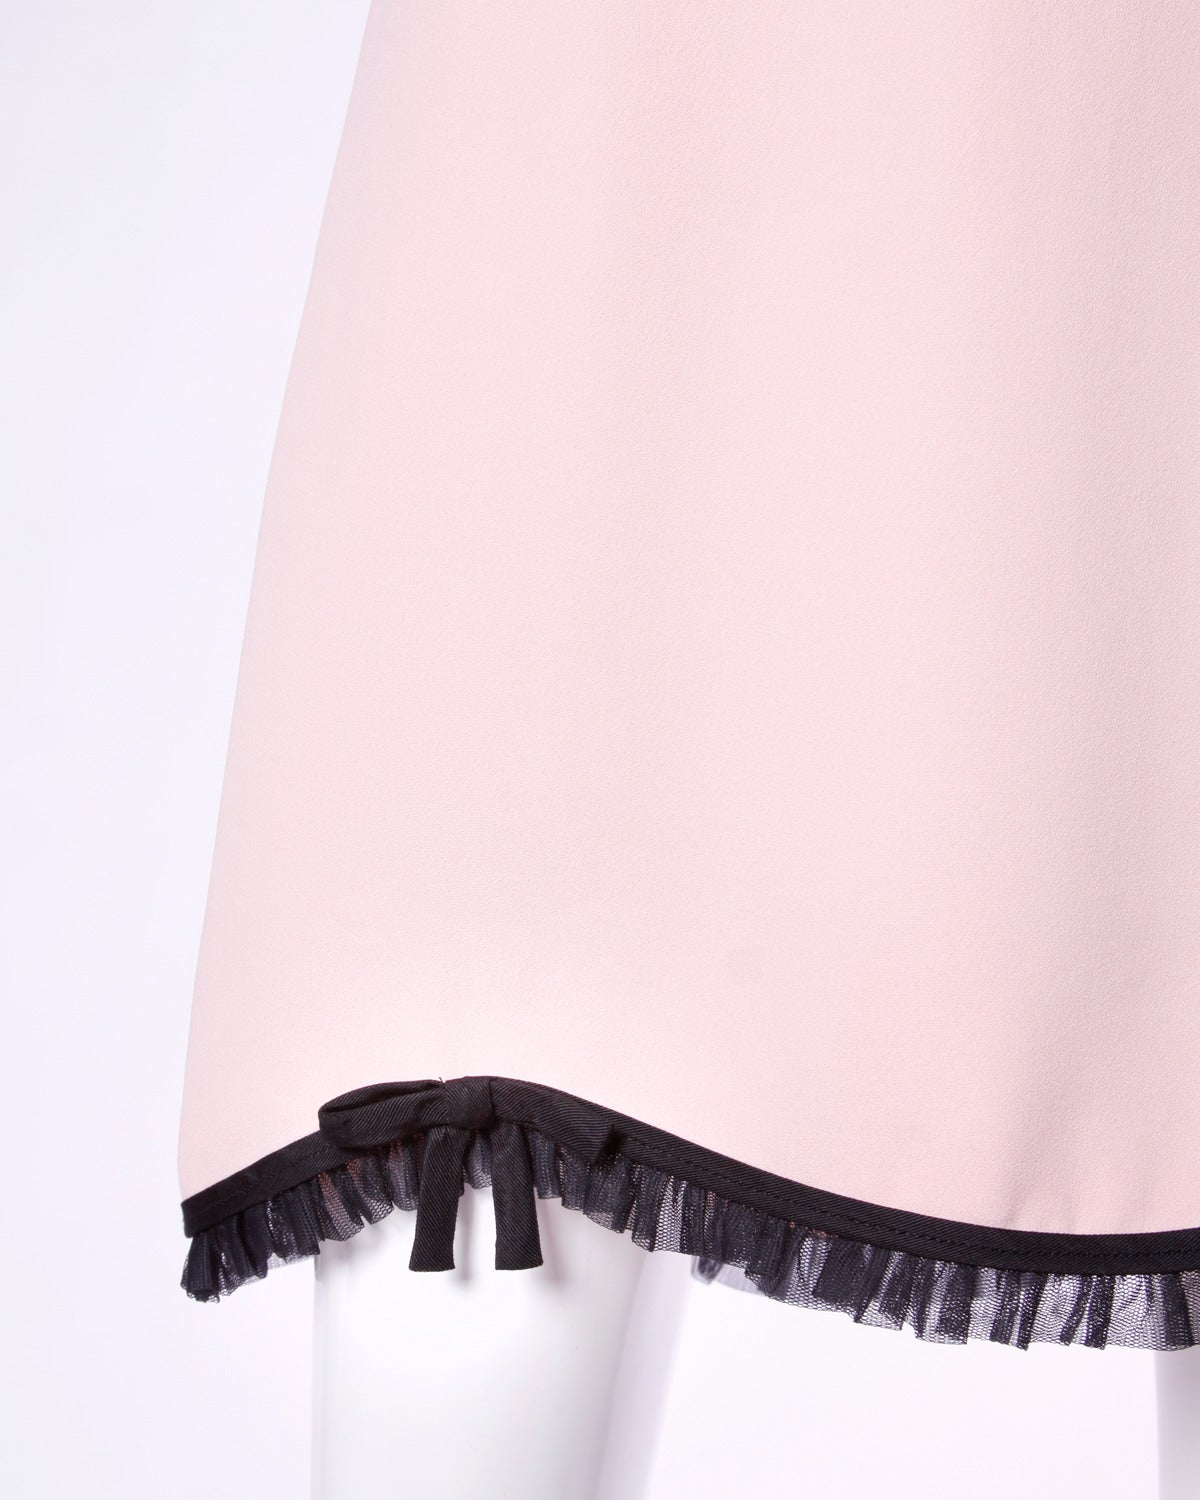 Moschino Vintage 1990s 90s Pink + Black Ruffle Scalloped Skirt 3